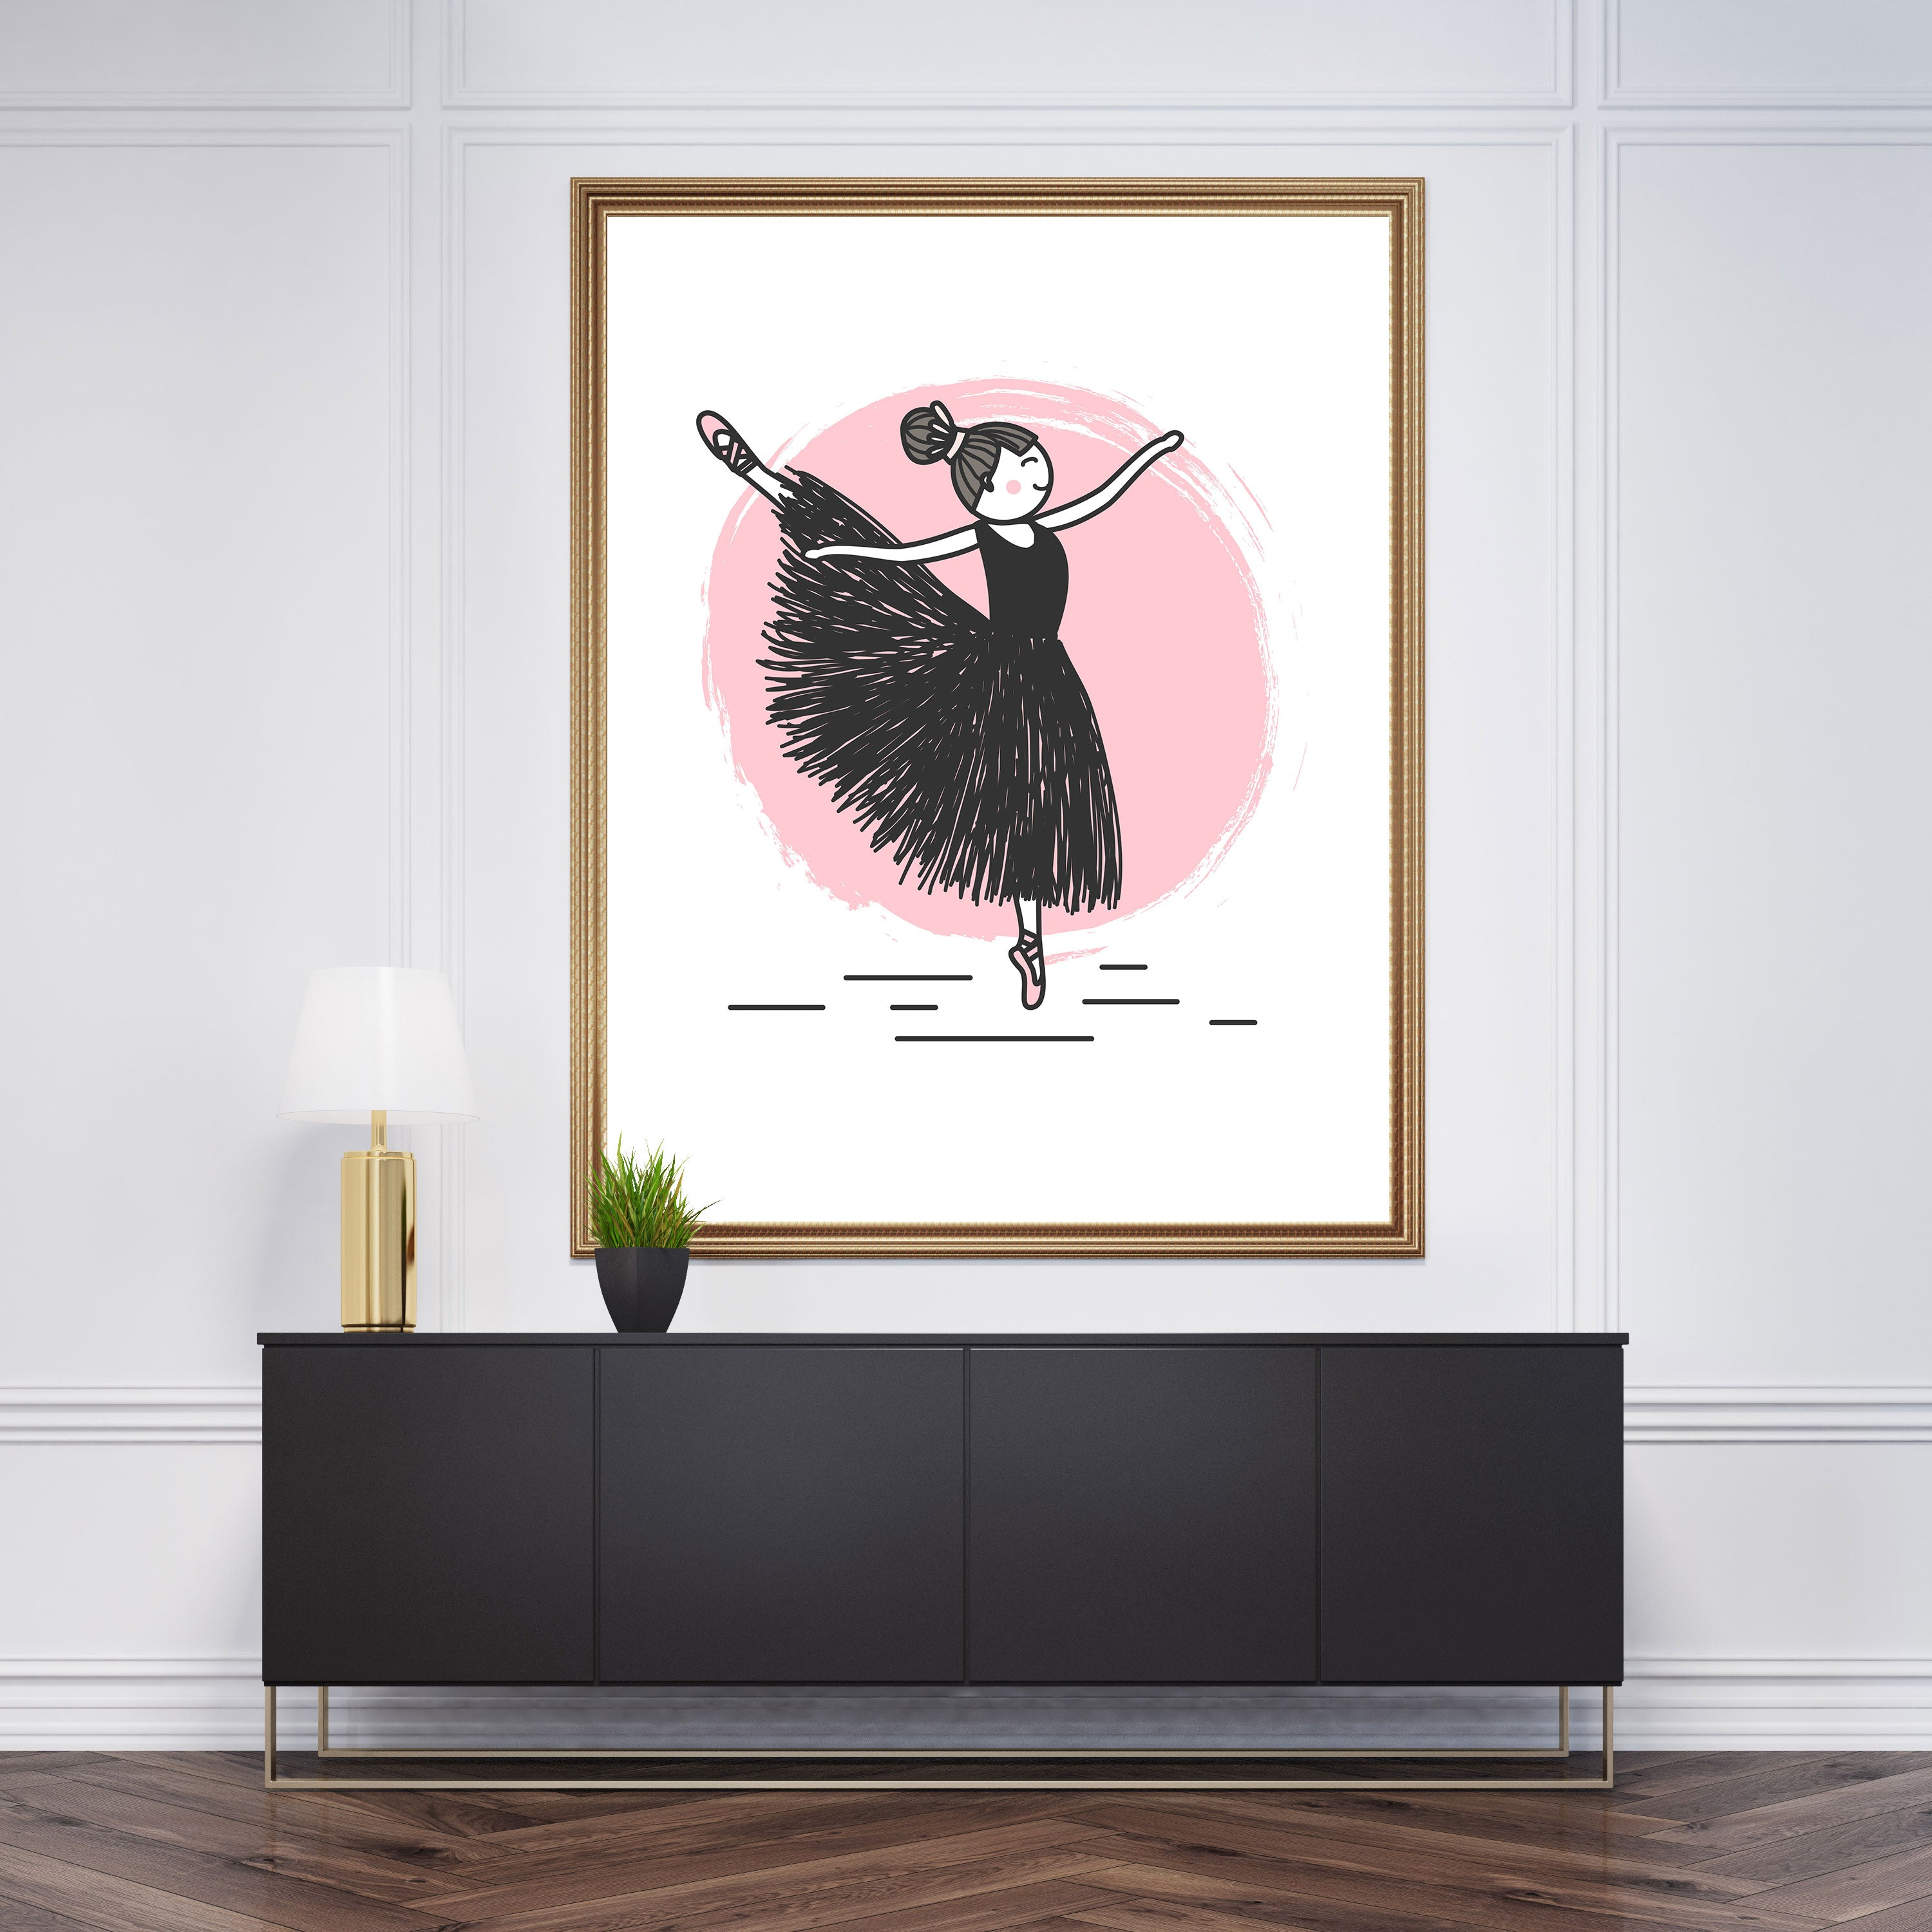 Cute drawing wall art with dancing ballerina sketch, on pink and white background